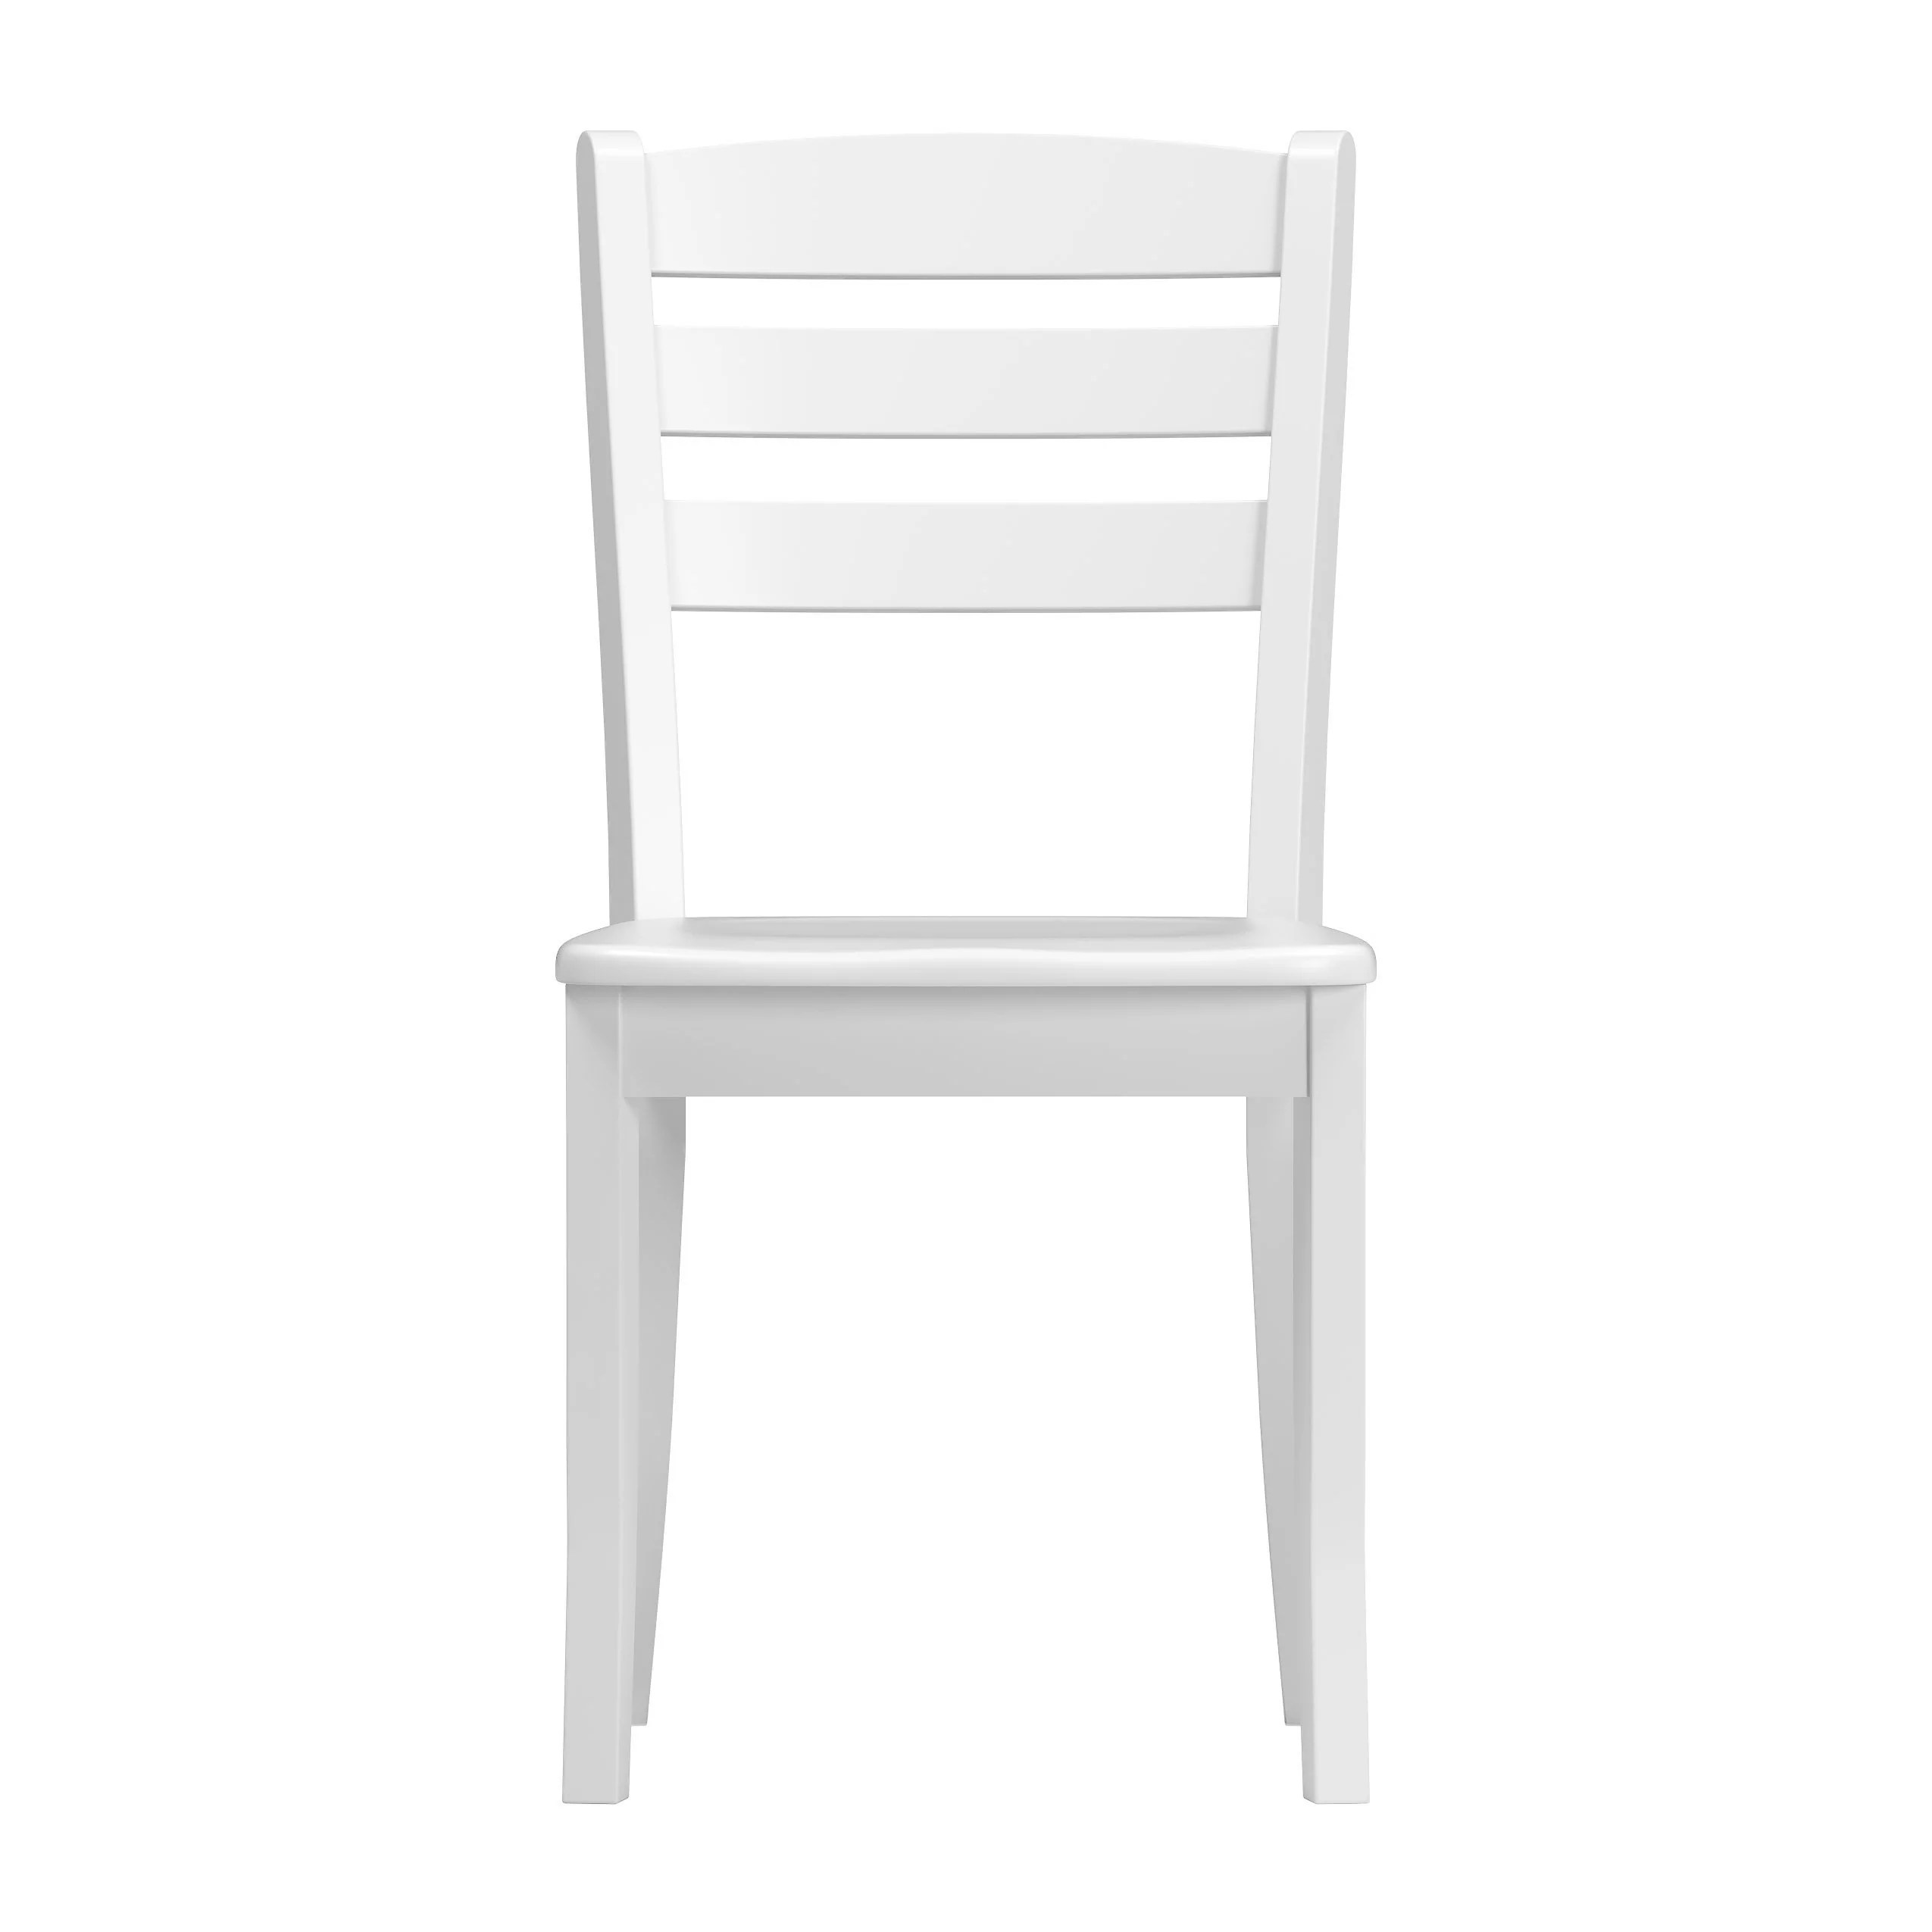 White Wooden Dining Chairs Stained Solid Wood Dining Chairs With Horizontal Slat Backrest Set Of 2